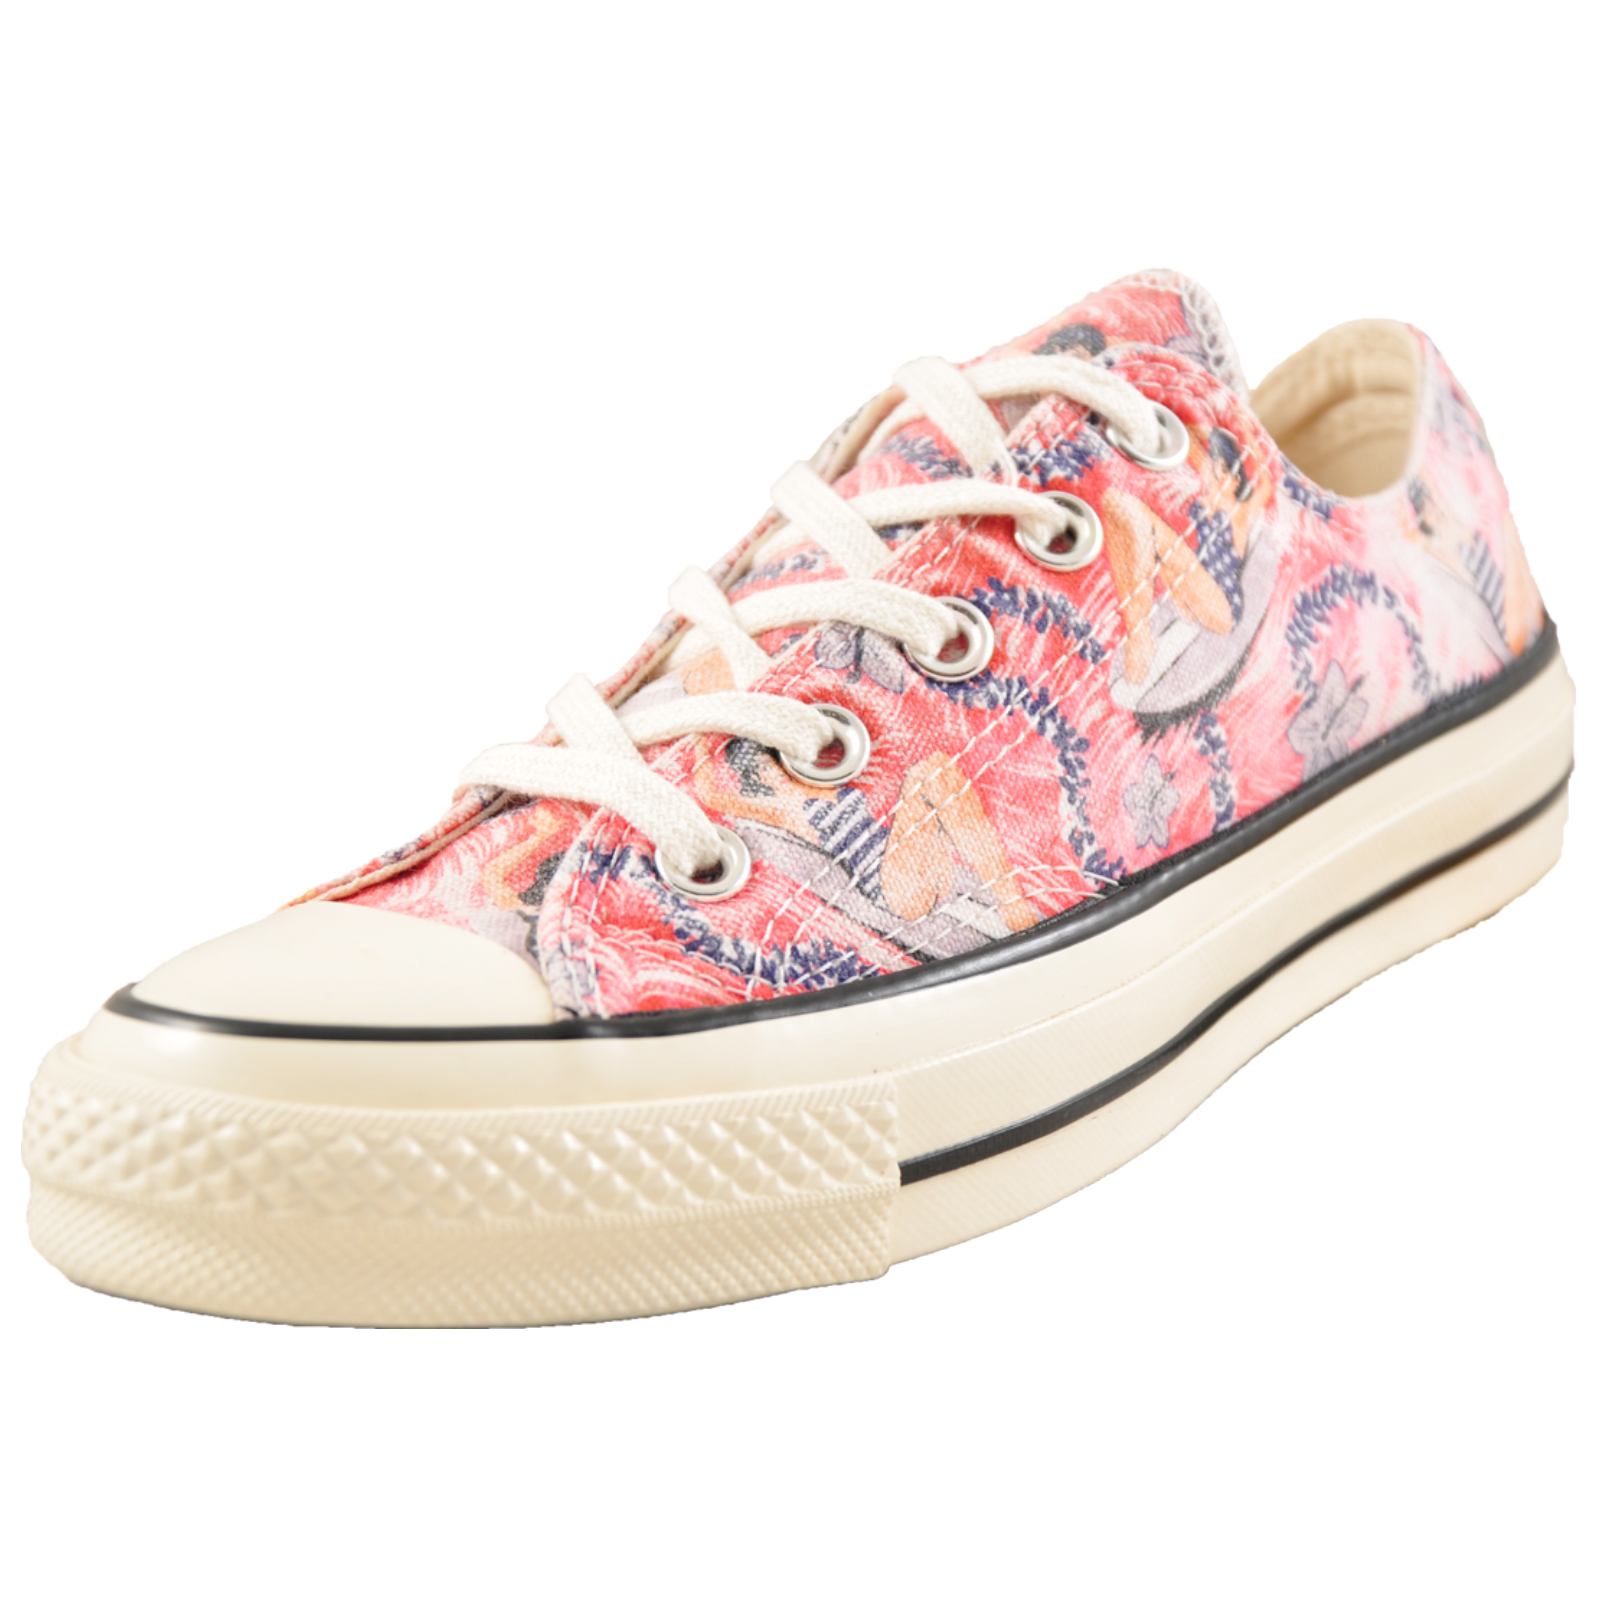 facfbde2d52b50 Details about Converse Chuck Taylor All Star 70 Ox Casino Canvas Women s  Plimsols Trainers